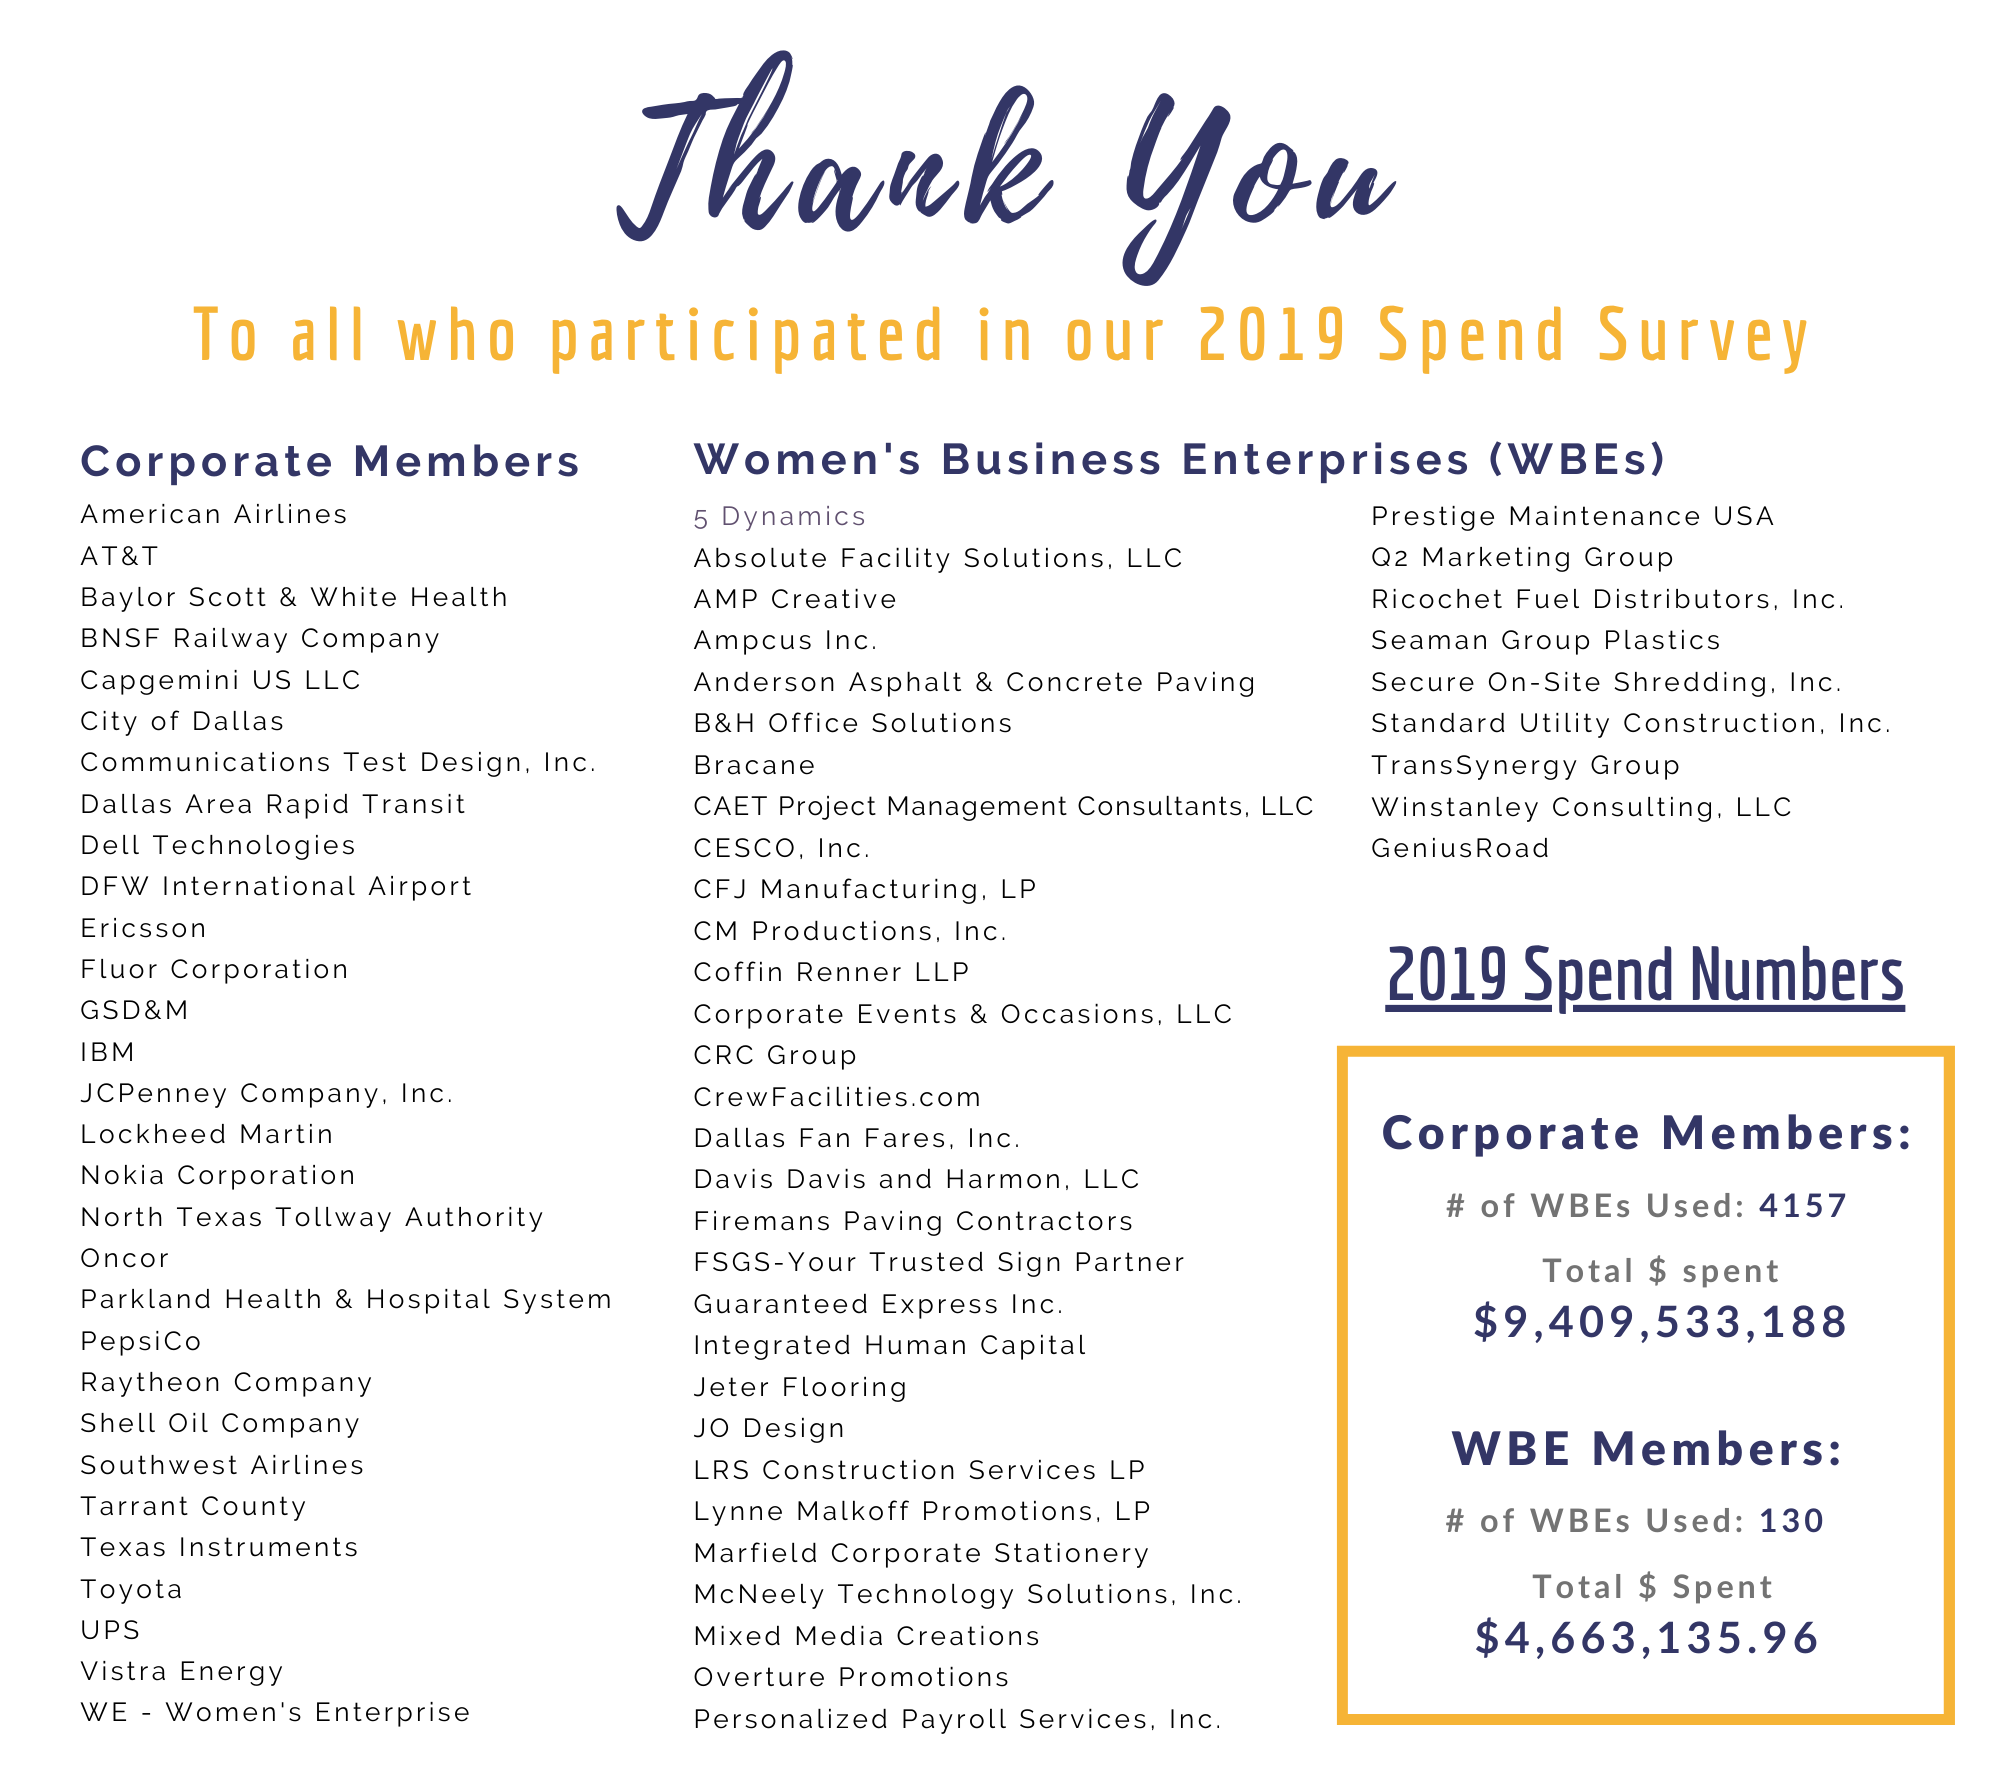 2019 Spend Survey Participants